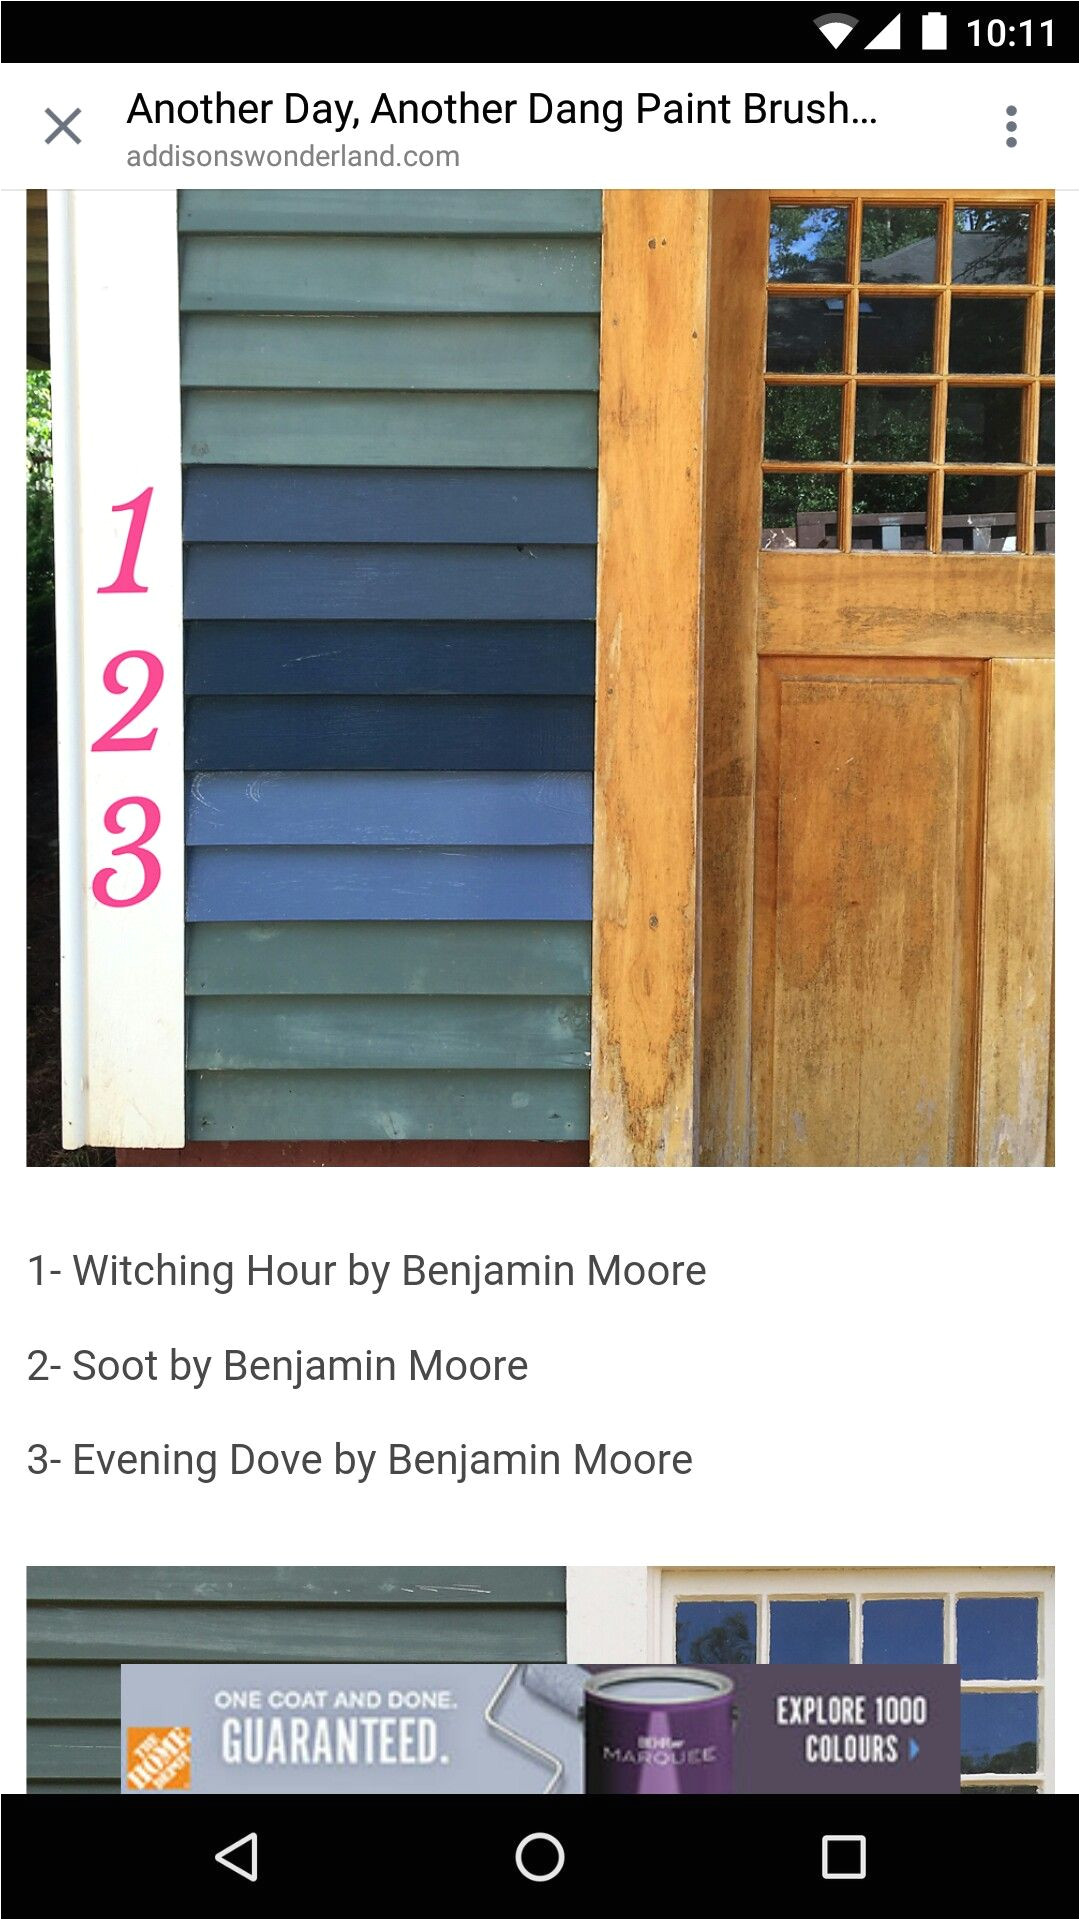 soot by benjamin moore maybe mixed with witching hour